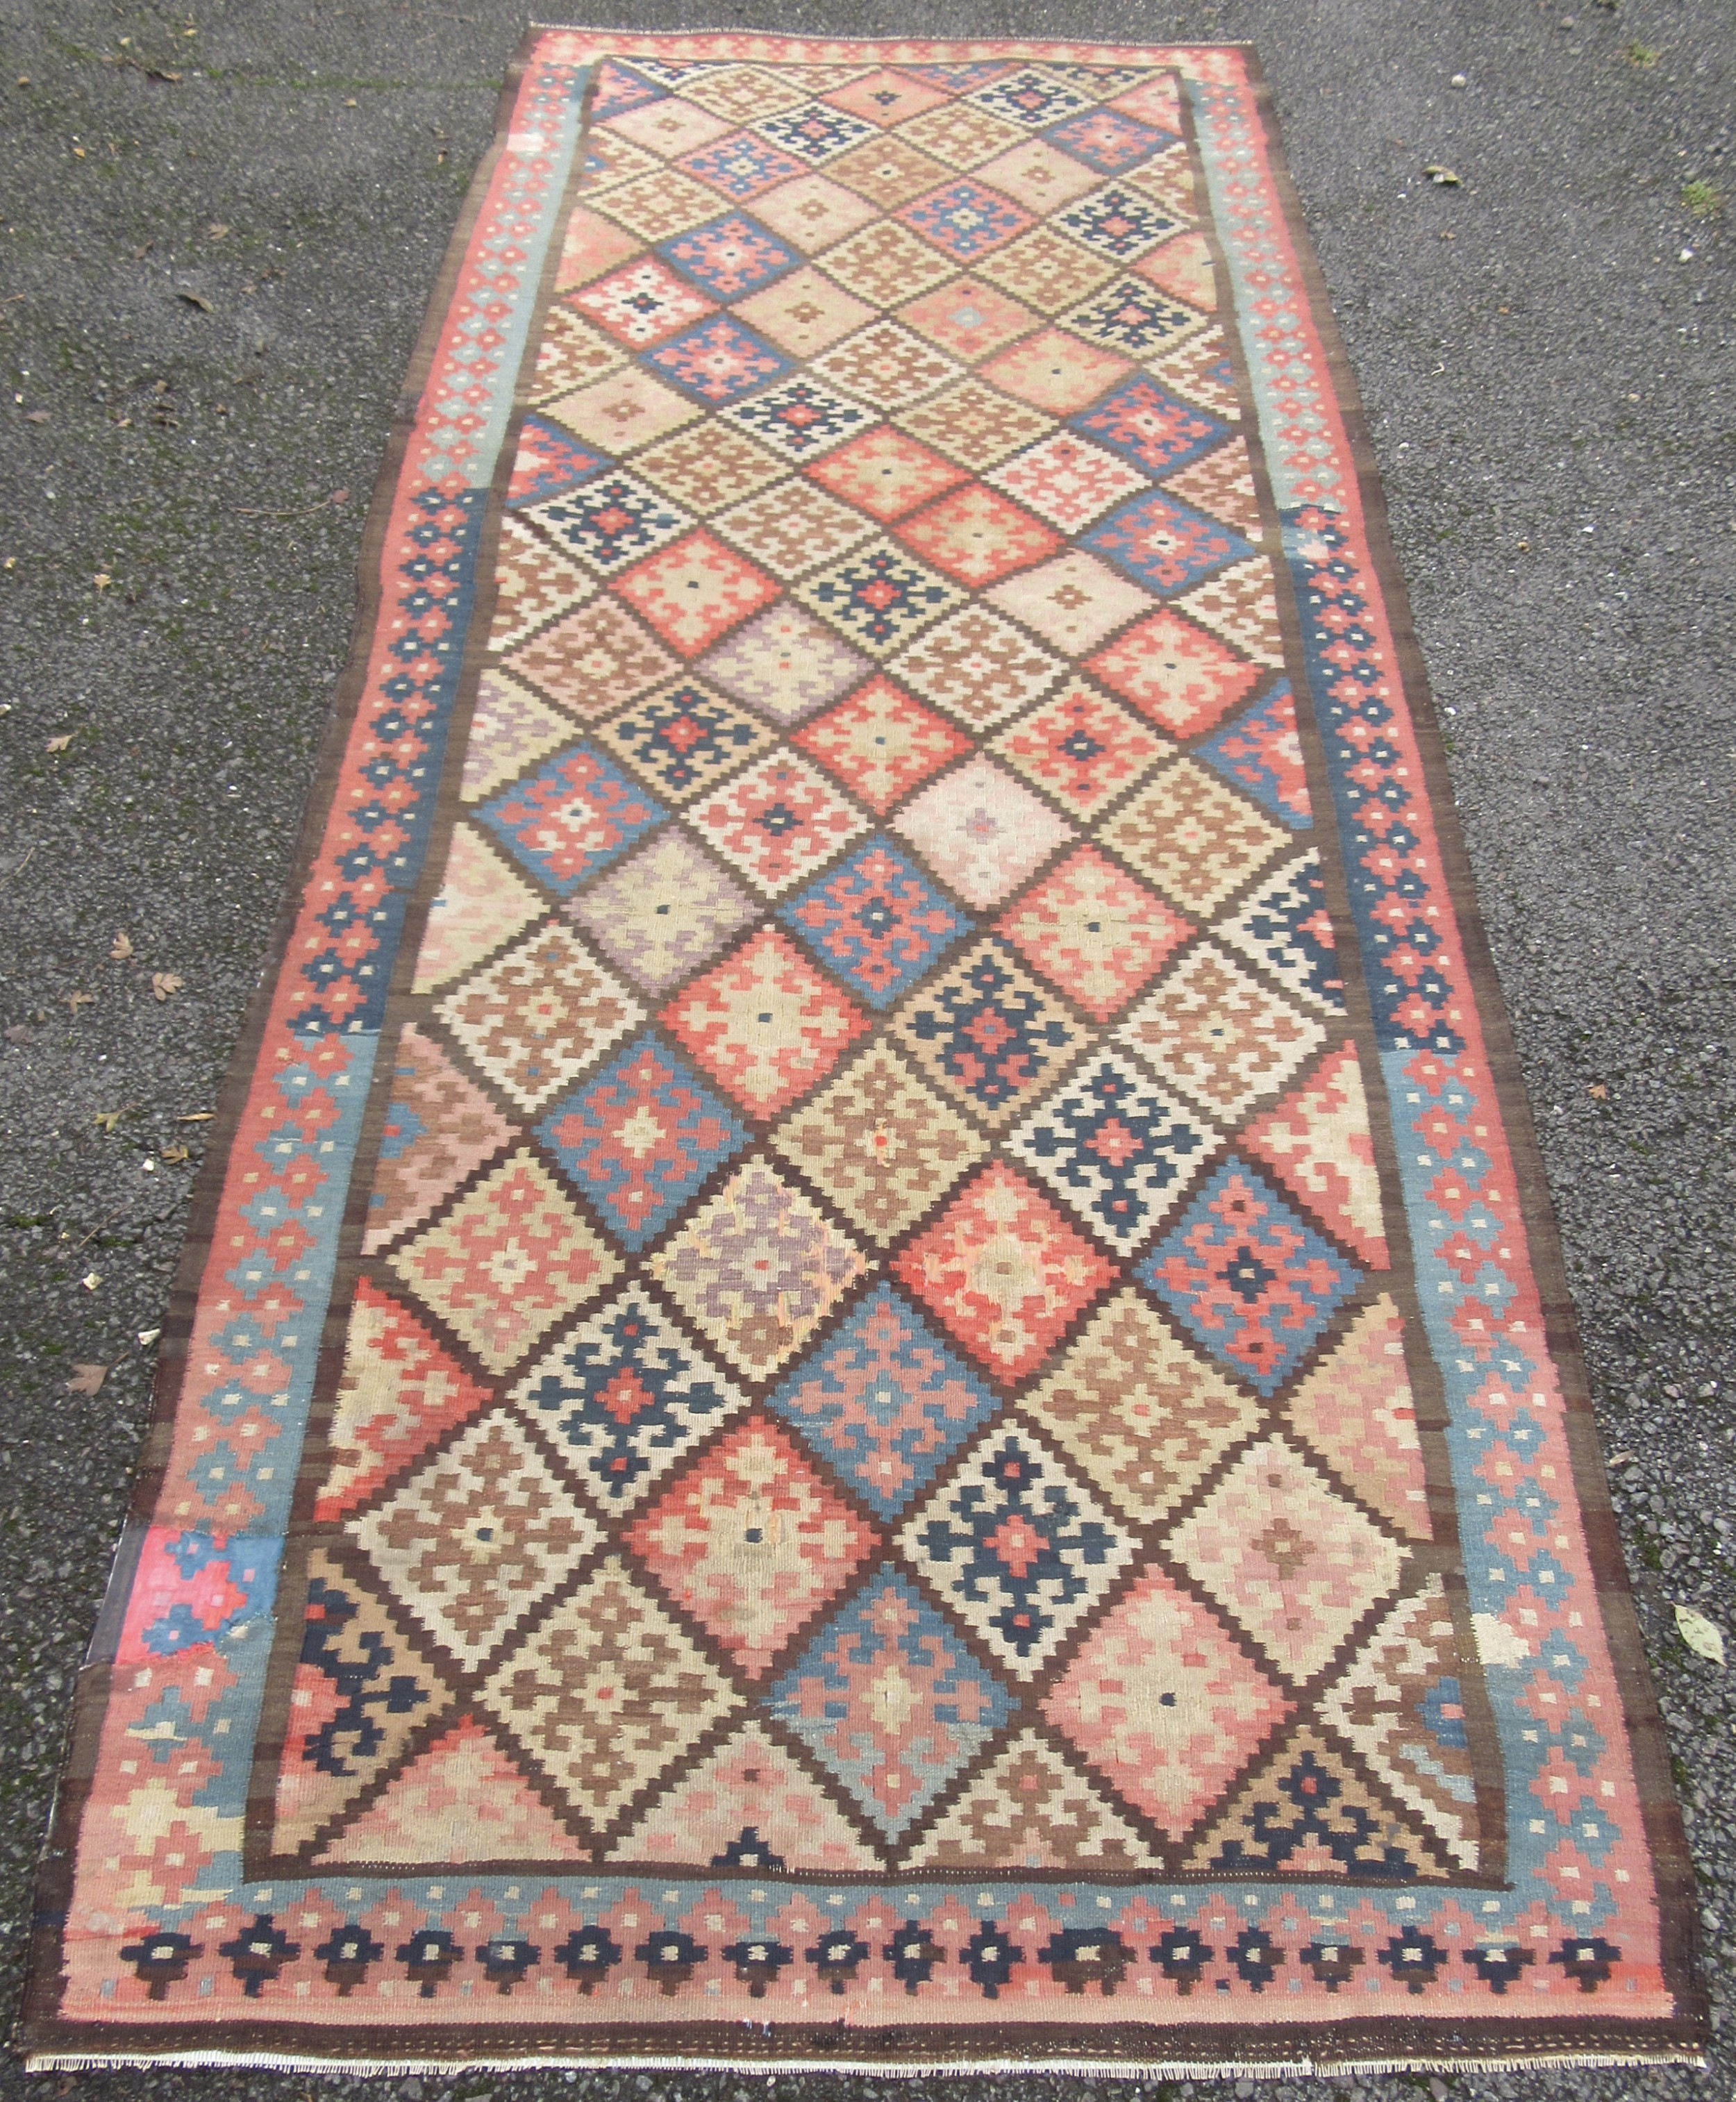 attractive antique country house shabby chic persian kurdish bakhtiari kilim kelim flat weave carpet rug